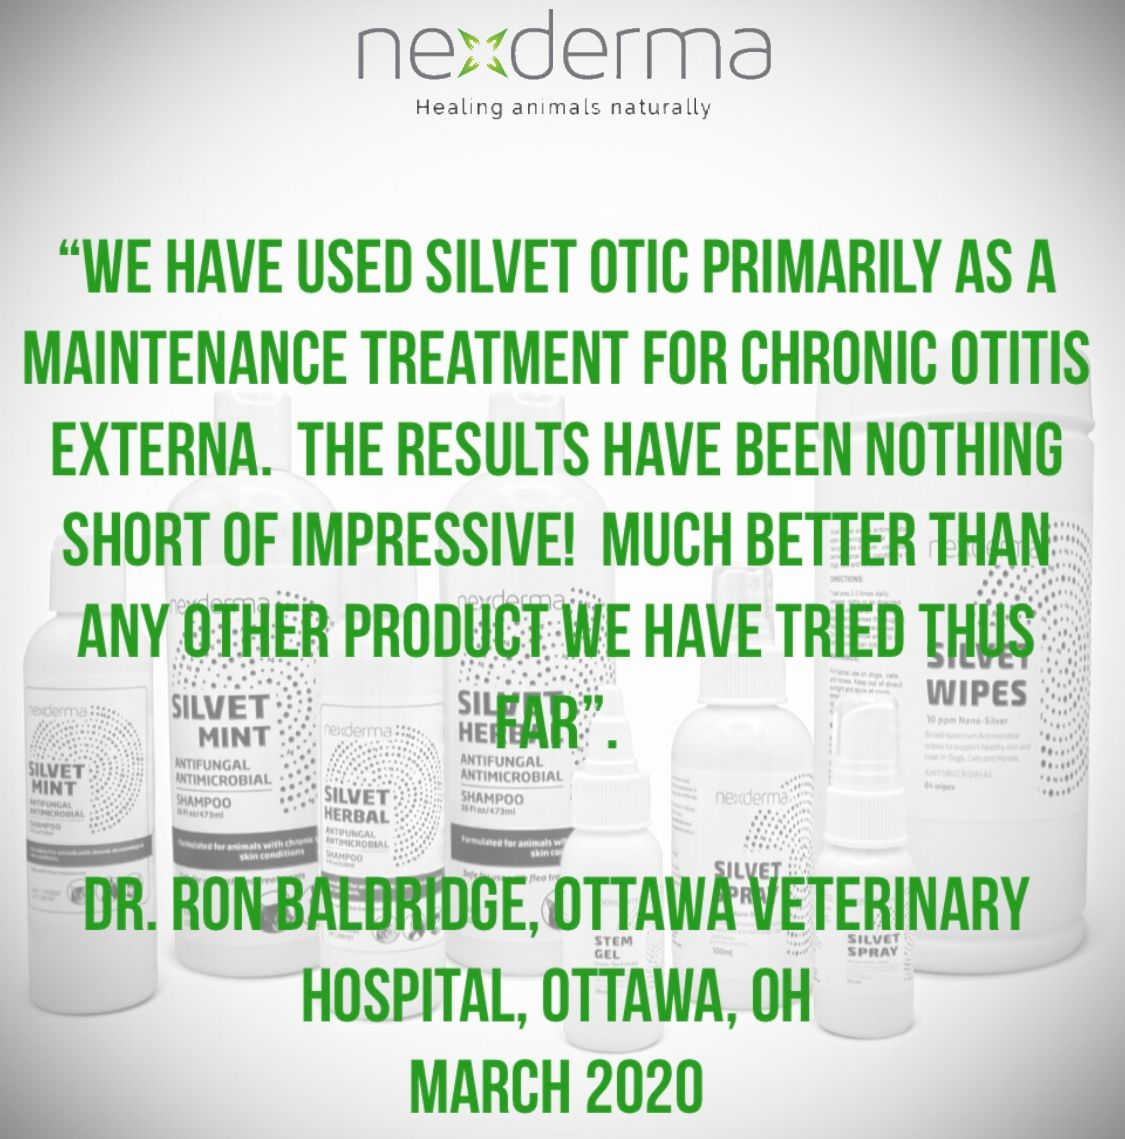 Thank You So Much Dr Baldridge And Ottawa Veterinary